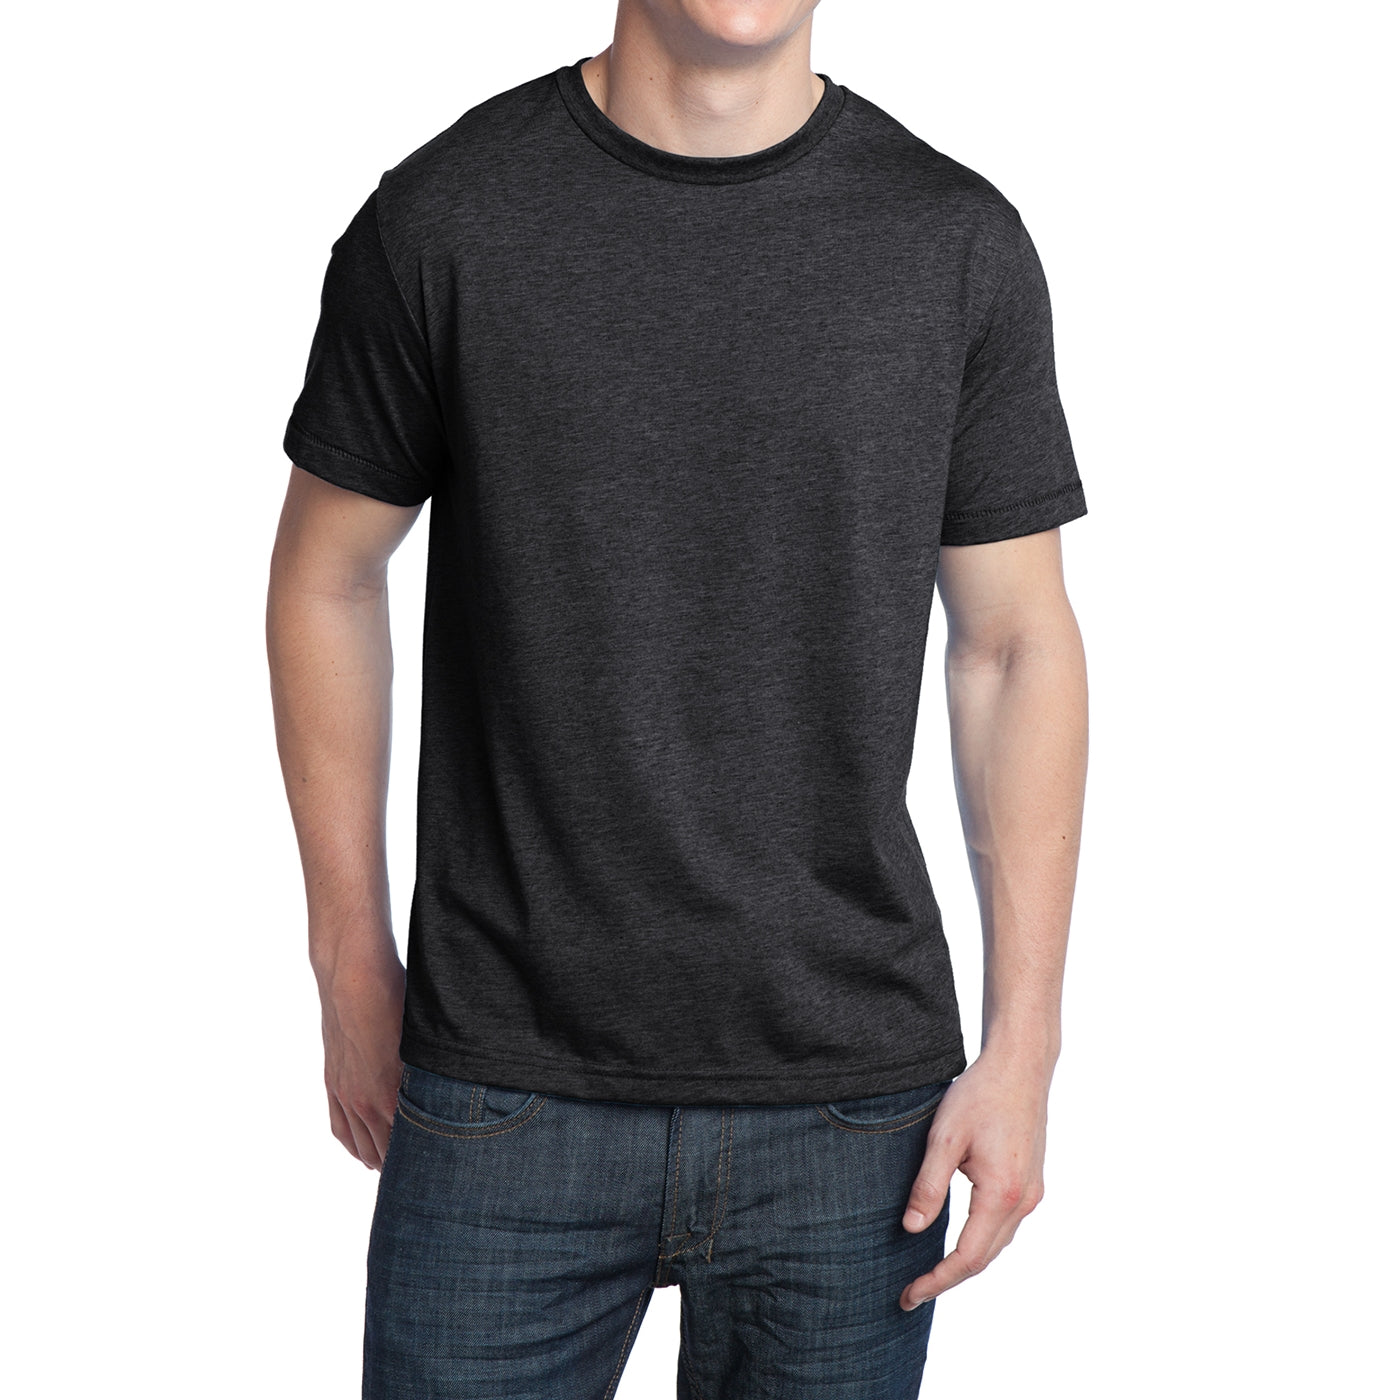 Men's Young Tri-Blend Crewneck Tee - Charcoal Heather